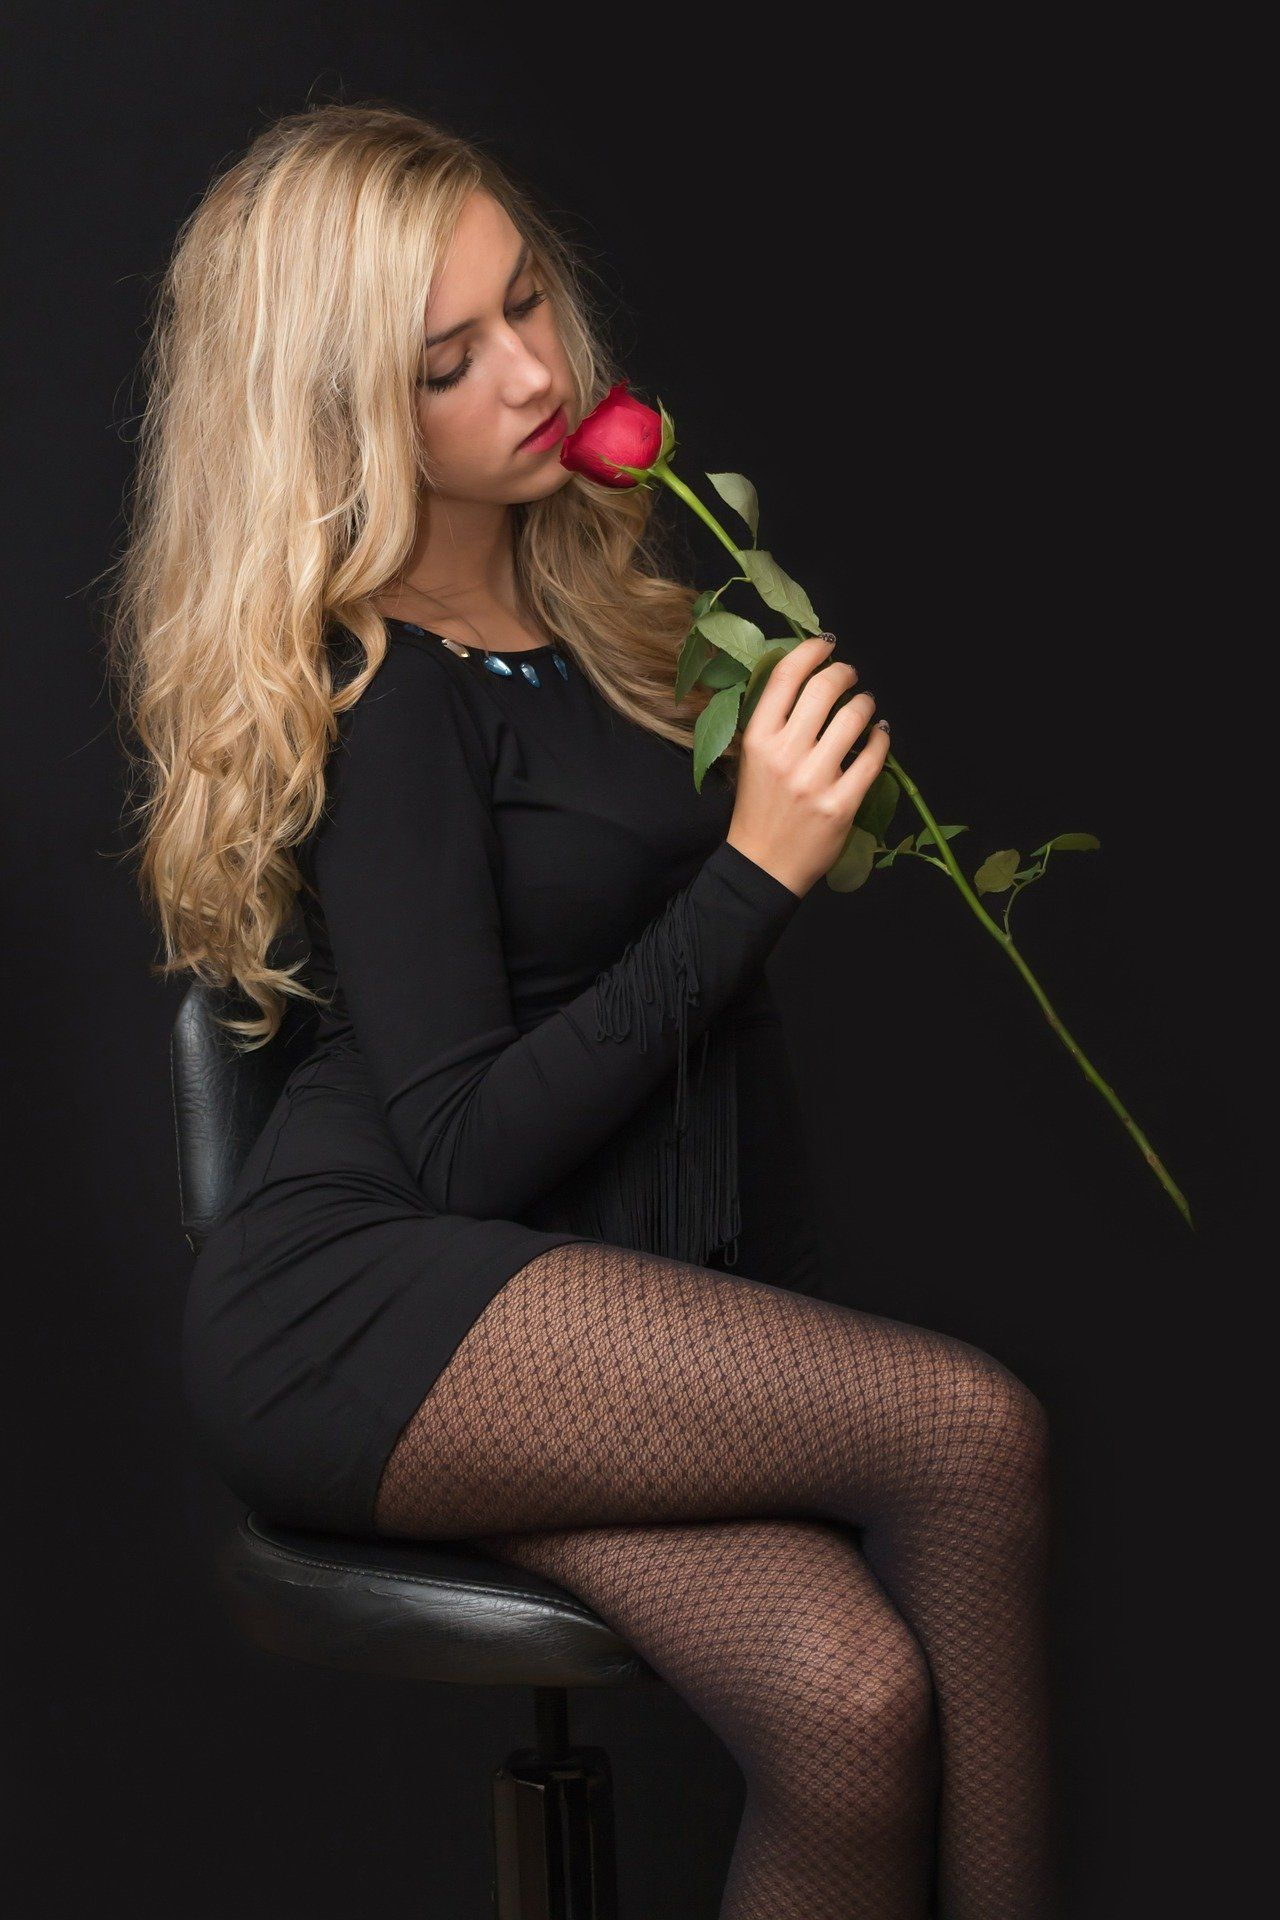 rencontre chat love easyrencontre